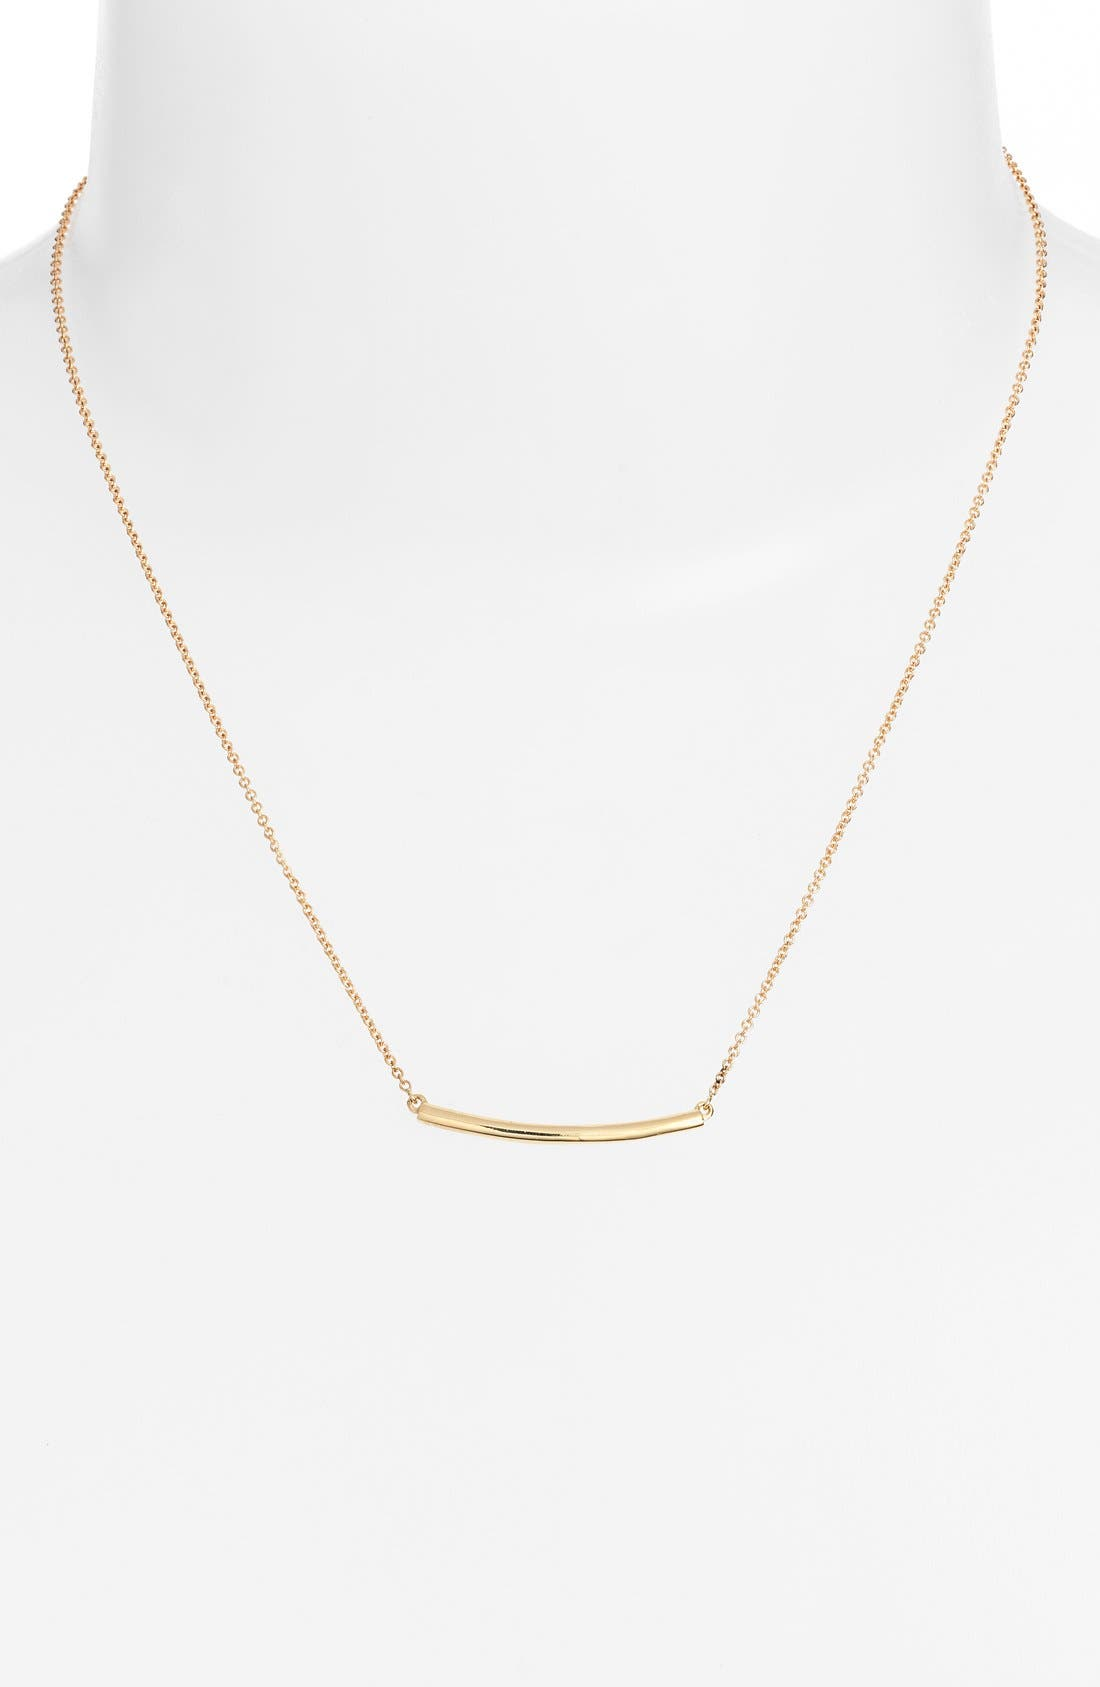 Bar Pendant Necklace,                             Alternate thumbnail 3, color,                             YELLOW GOLD